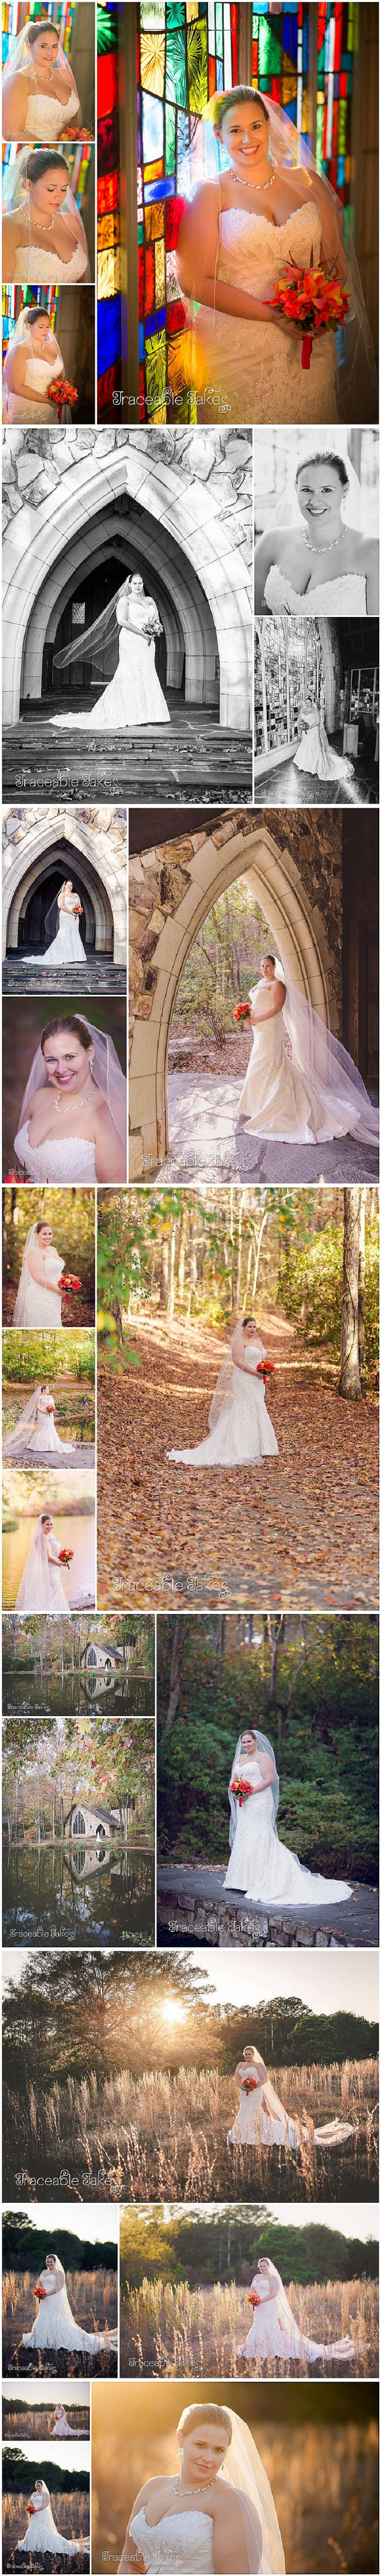 Ashley-bridal-8662_traceabletakes